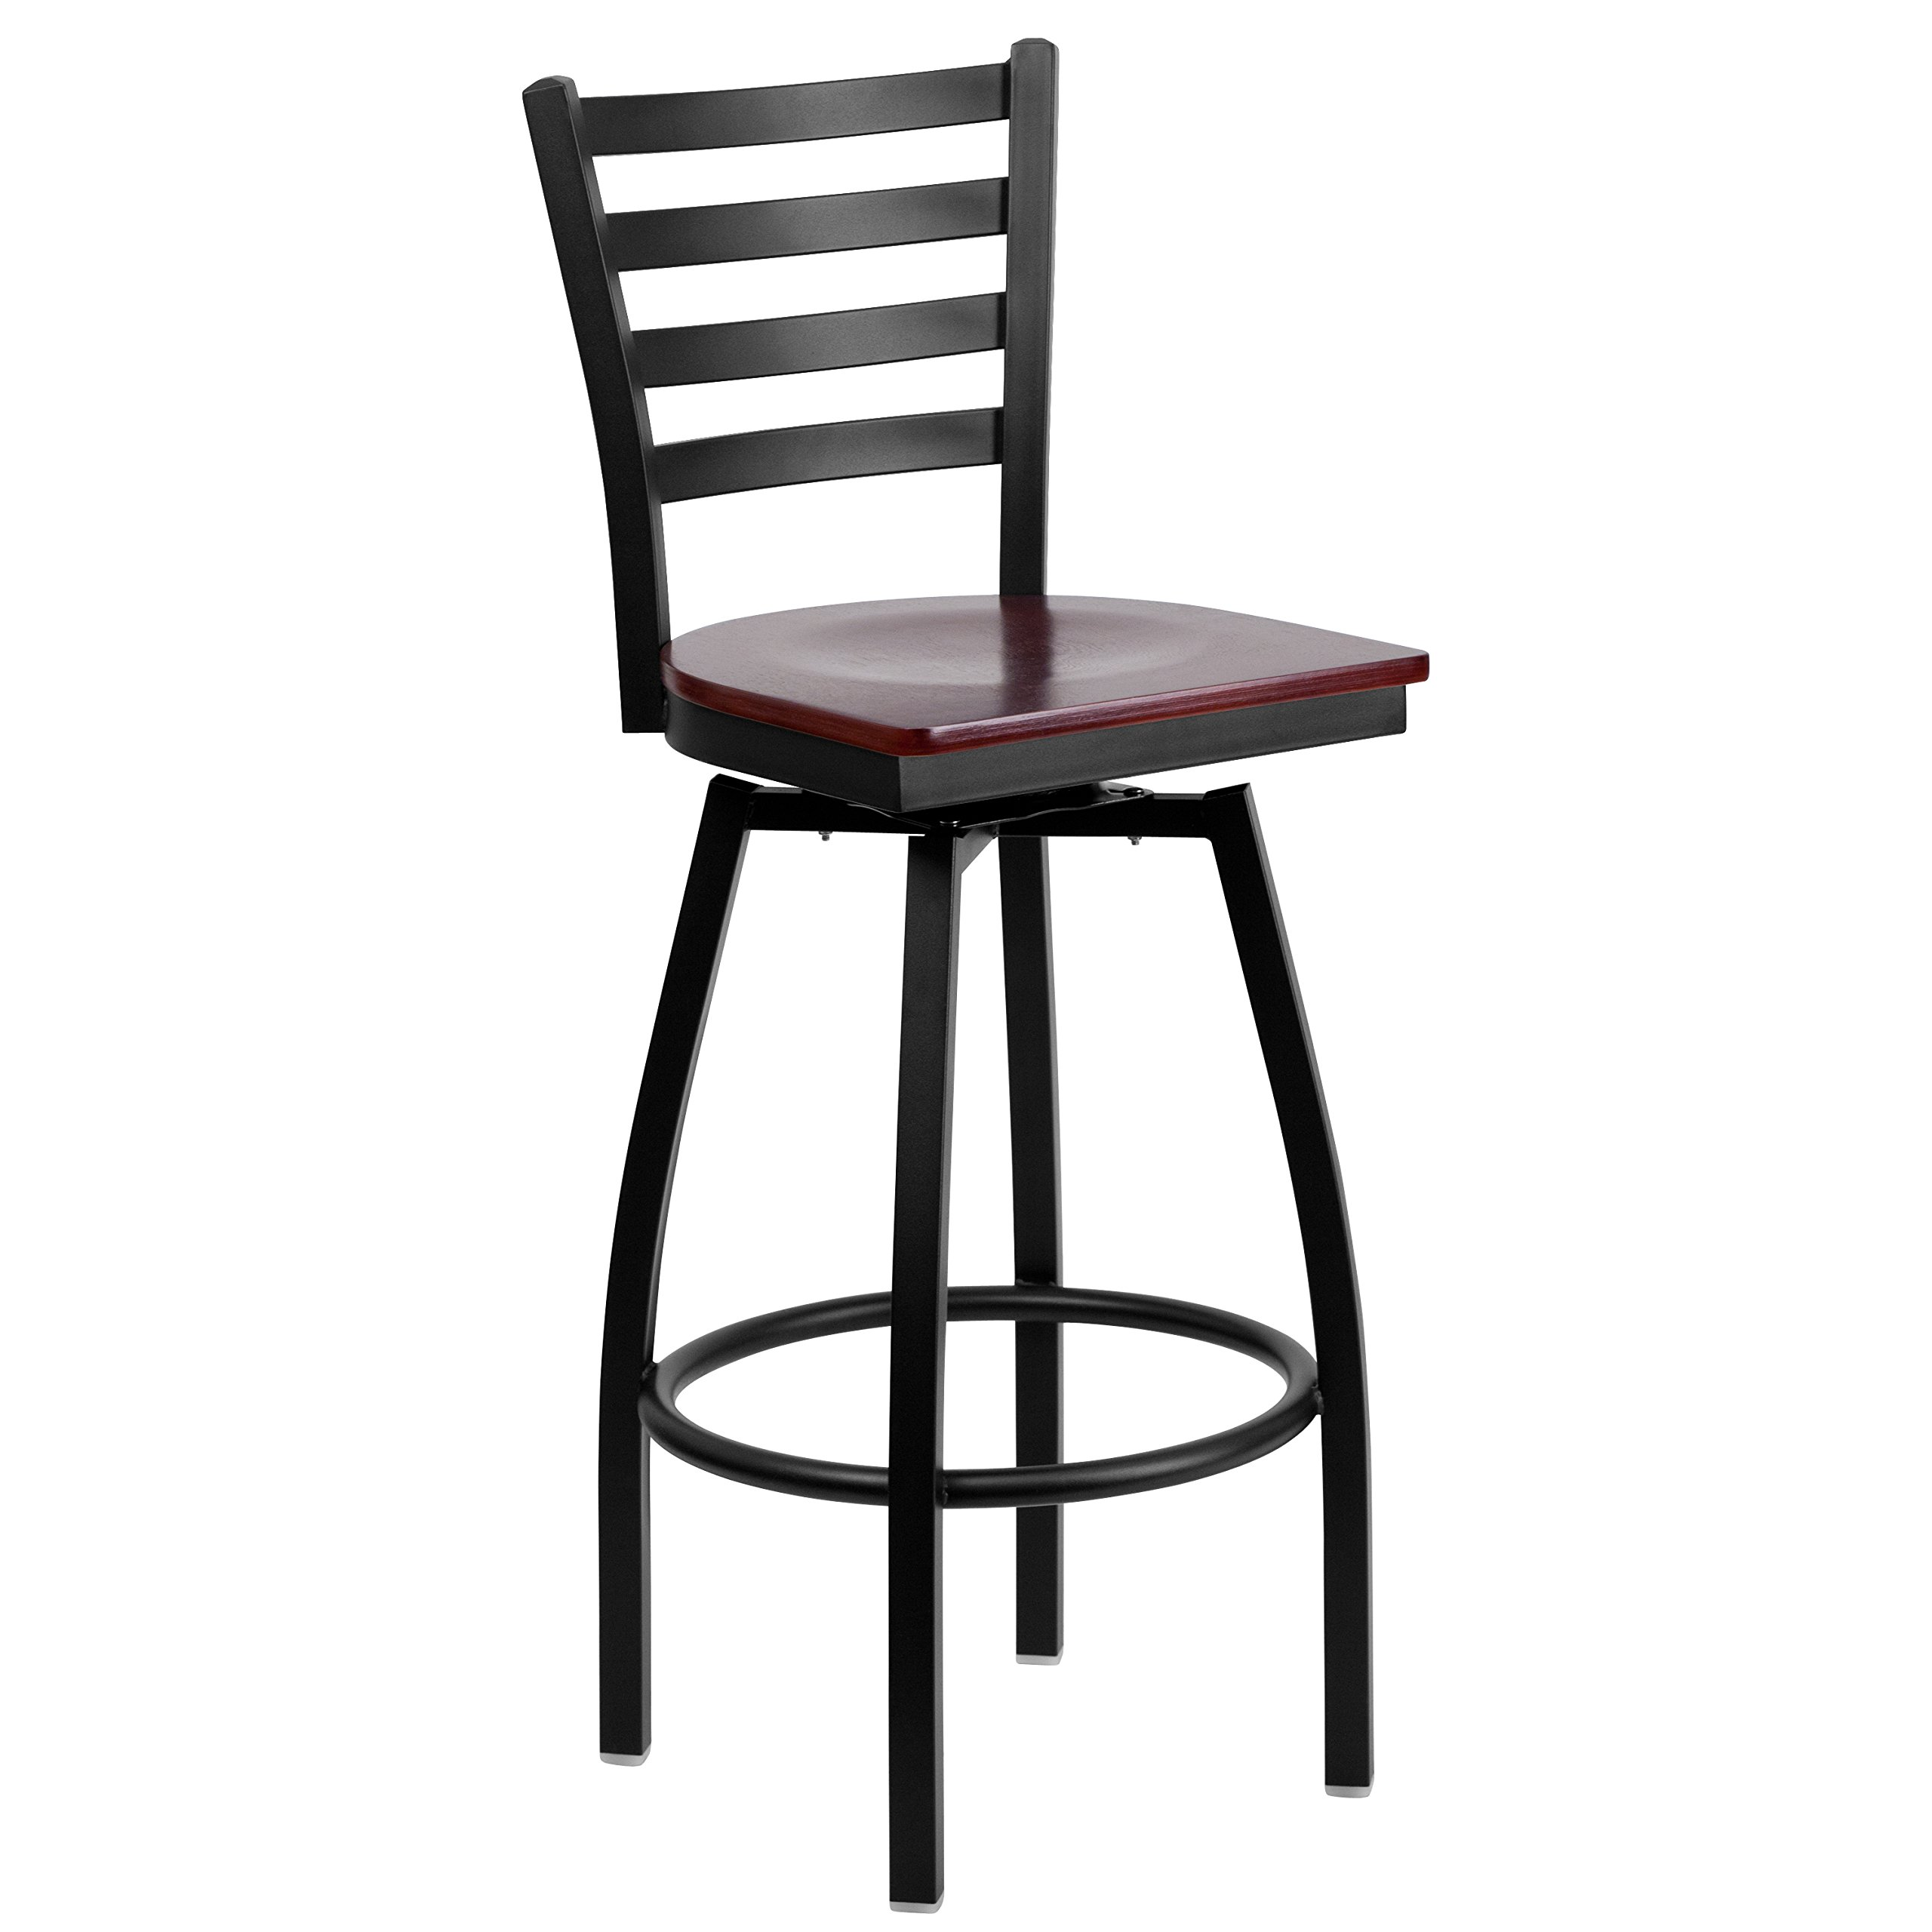 Flash Furniture HERCULES Series Black Ladder Back Swivel Metal Barstool - Mahogany Wood Seat